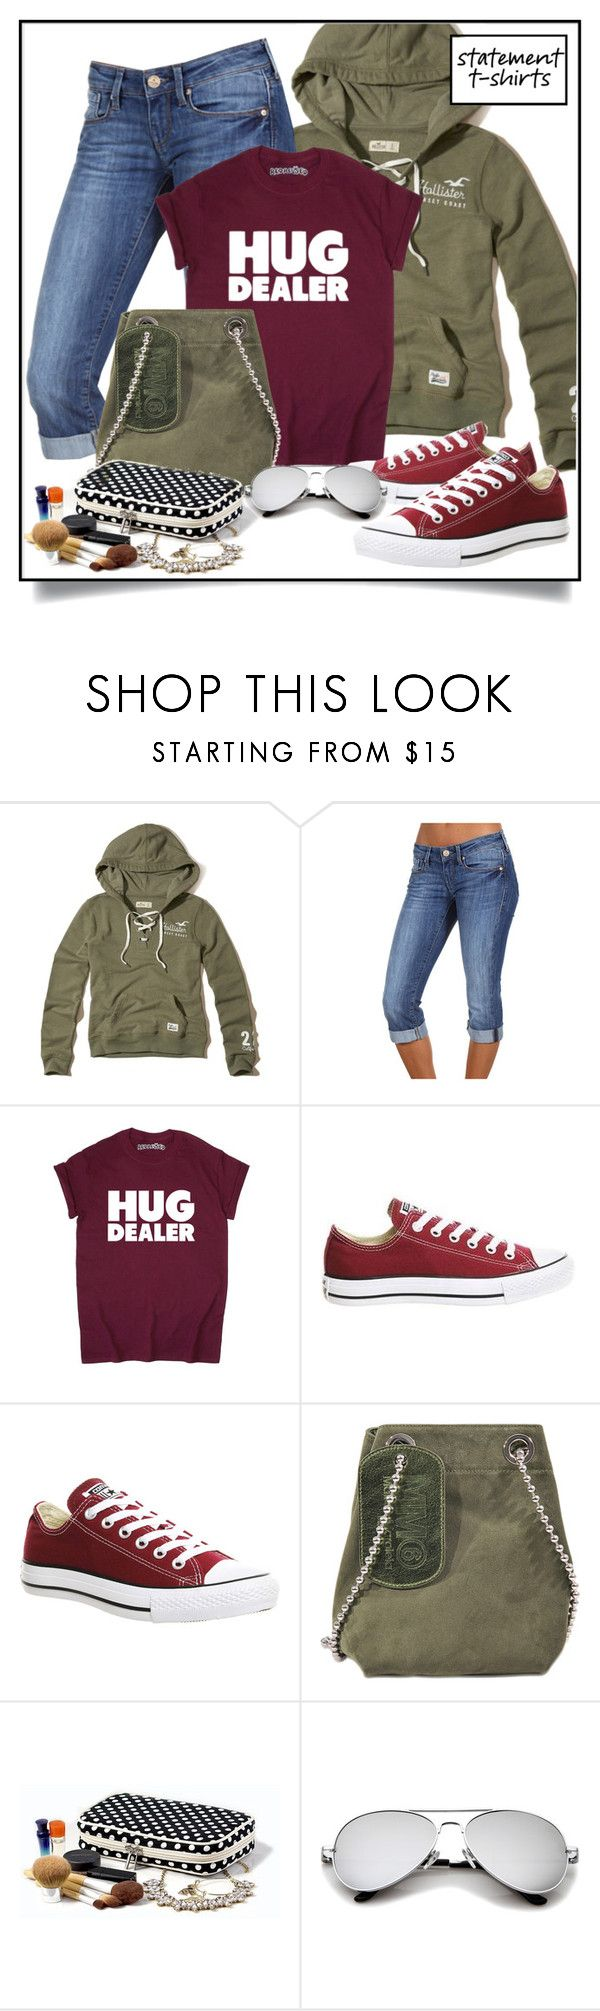 """Hug dealer"" by nicole-christie-mennen ❤ liked on Polyvore featuring Hollister Co., Mavi, Converse and MM6 Maison Margiela"